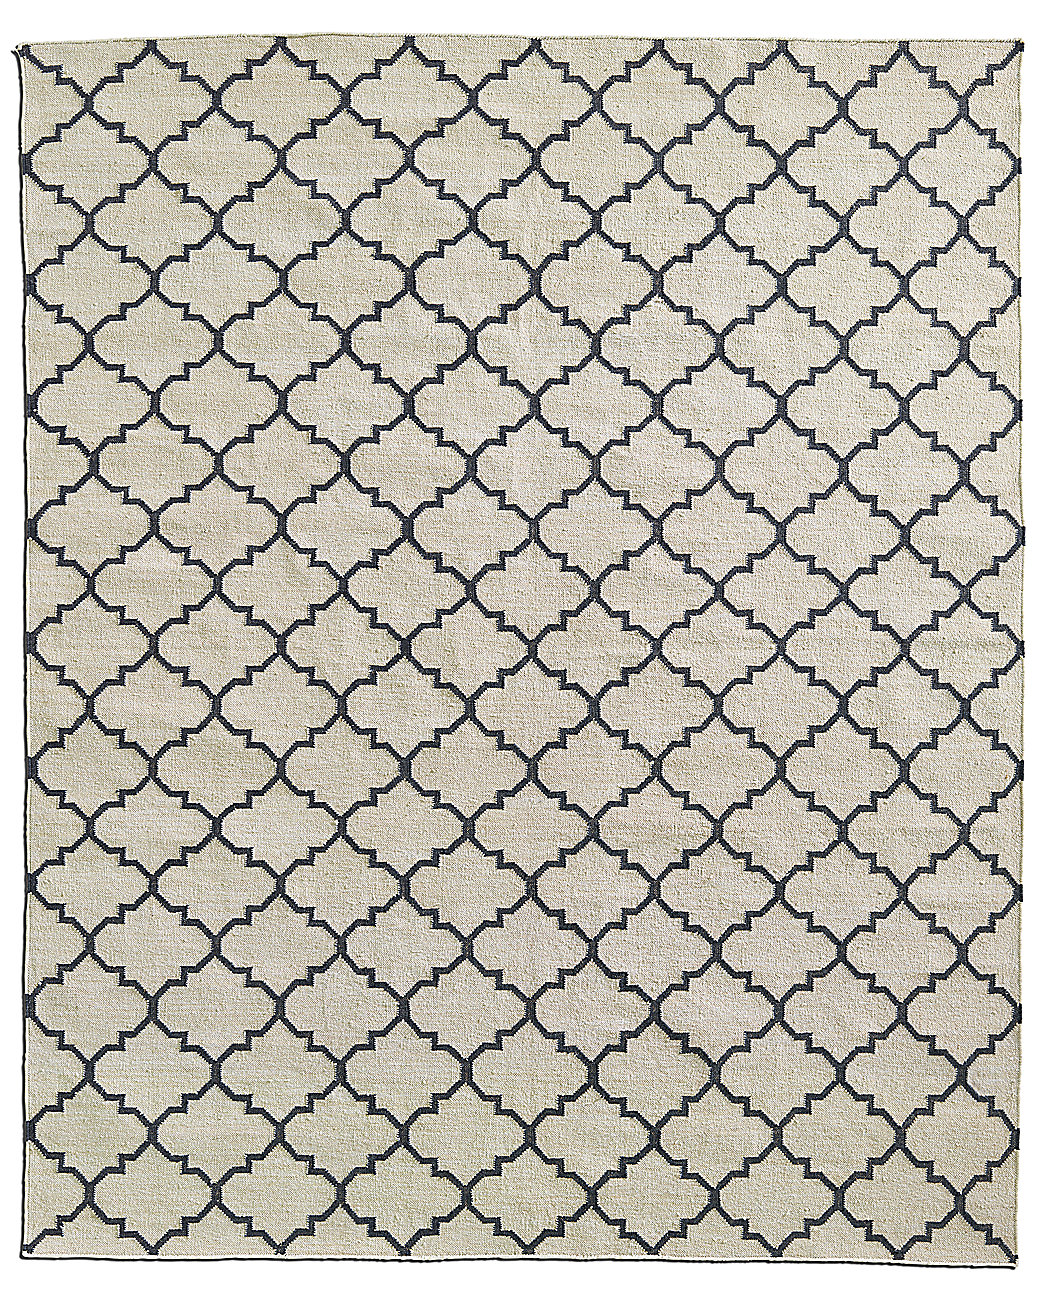 Hand-Knotted Moroccan Tile Flatweave Outdoor Rug - Ivory/Black